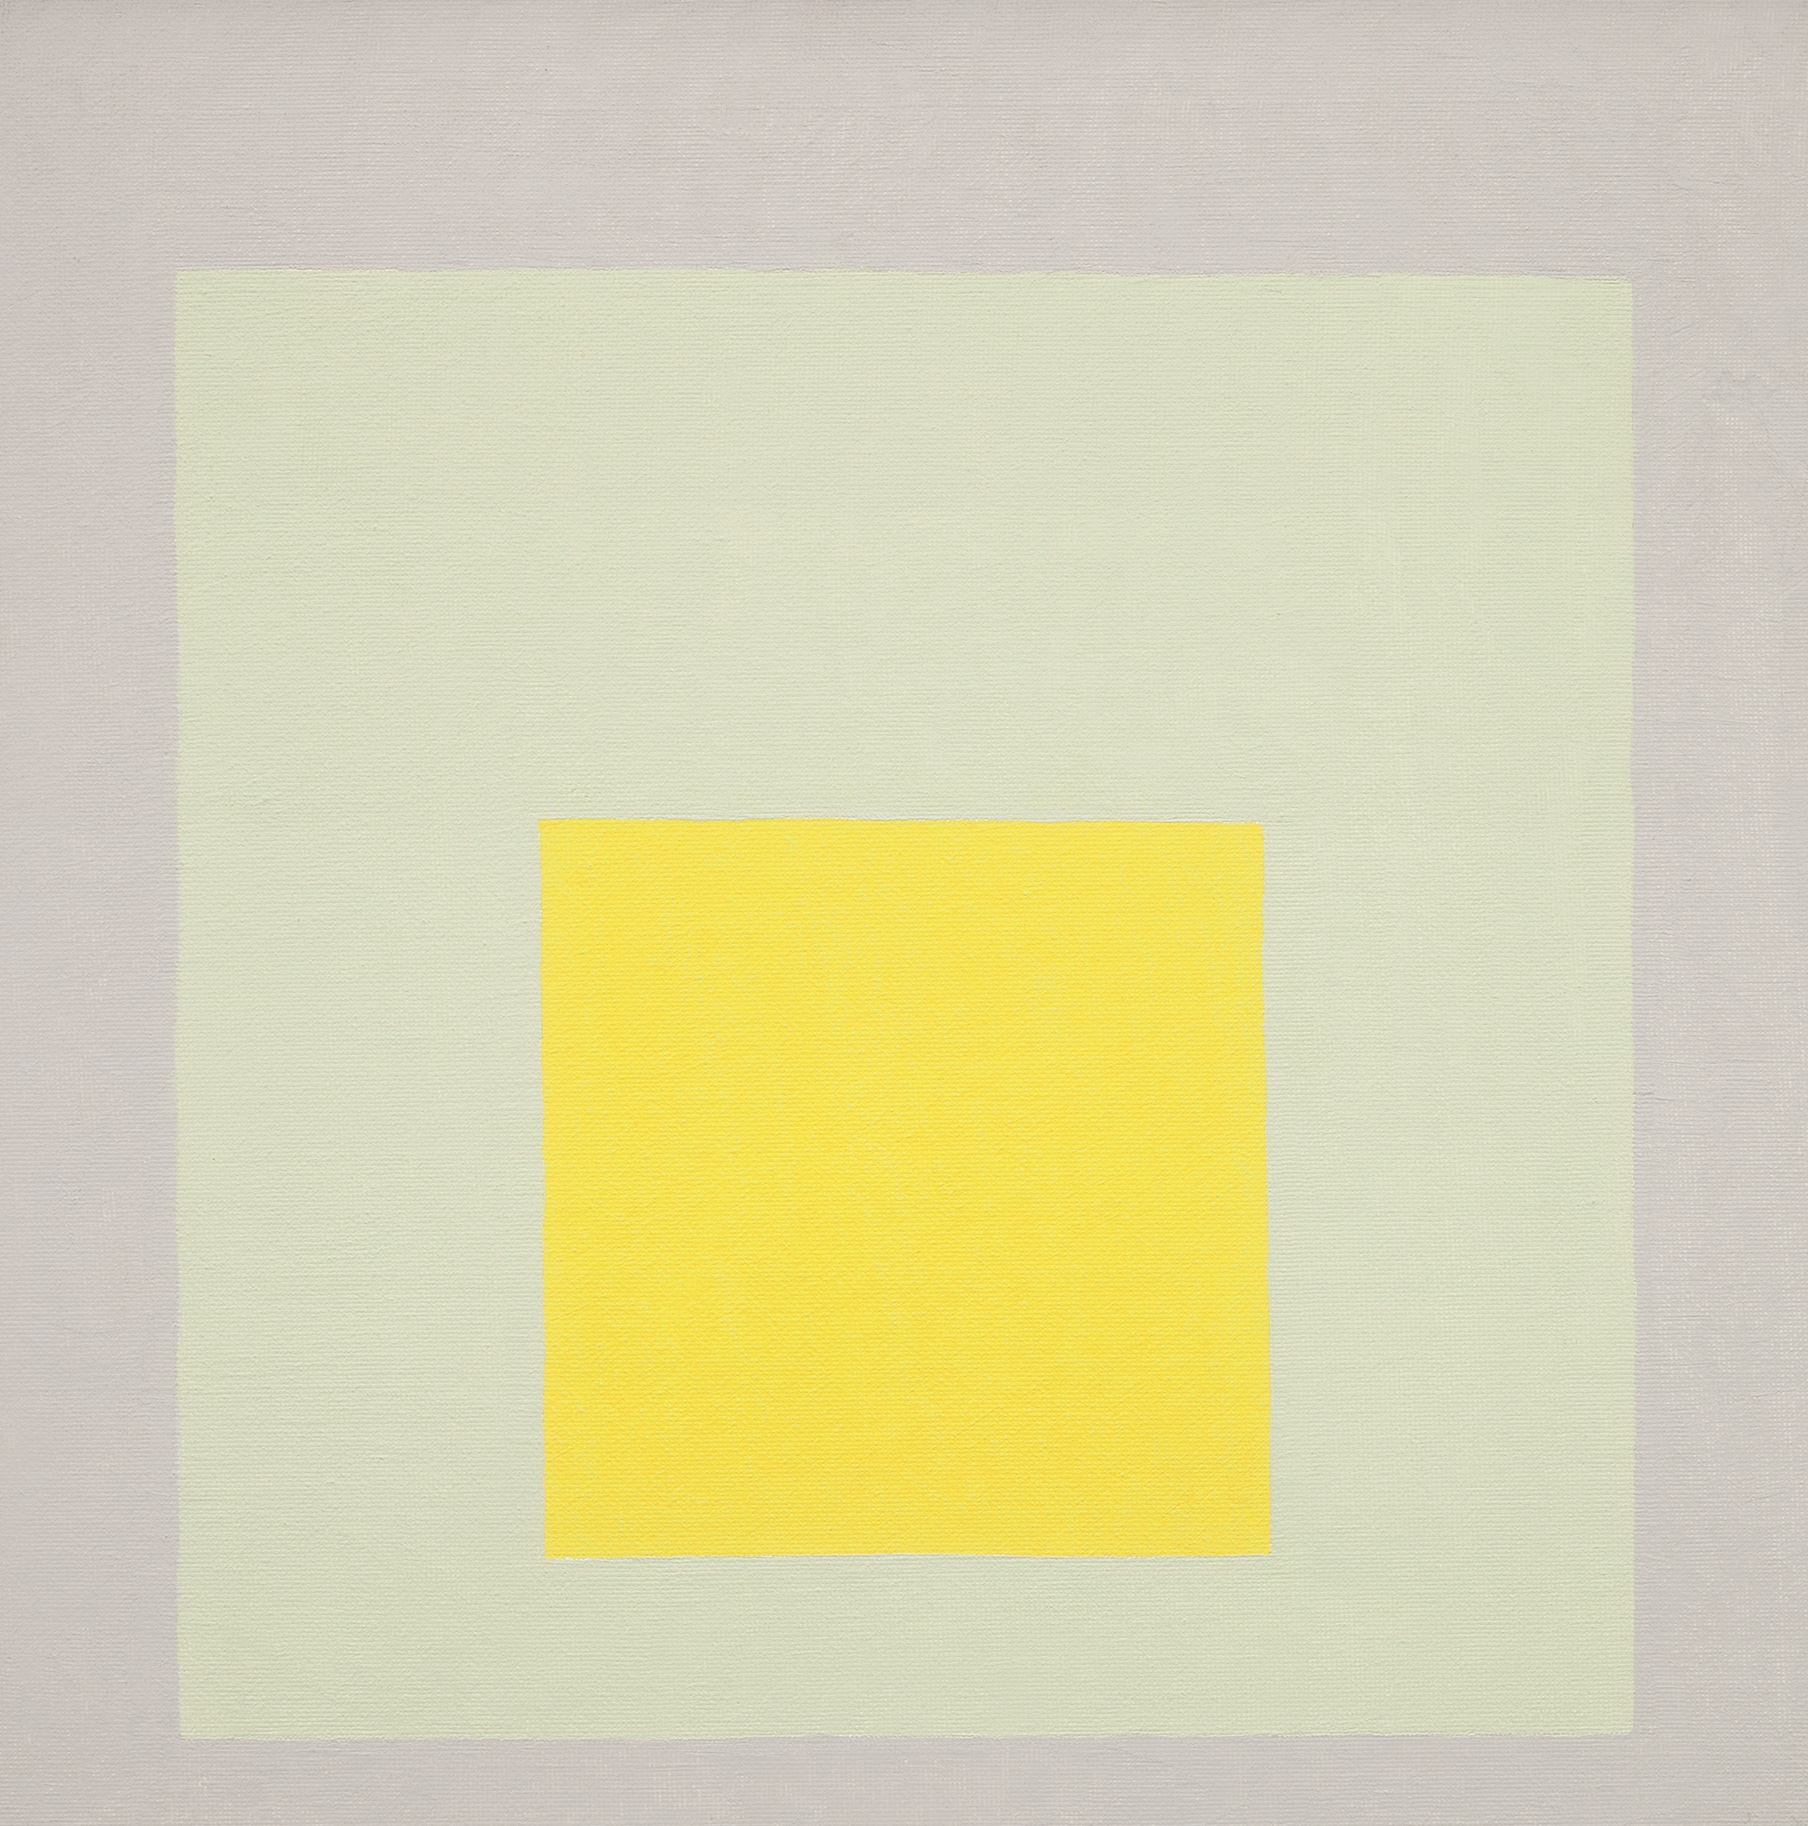 Study for Homage to the Square: Impact, 1965. Oil on Masonite, by Josef Albers